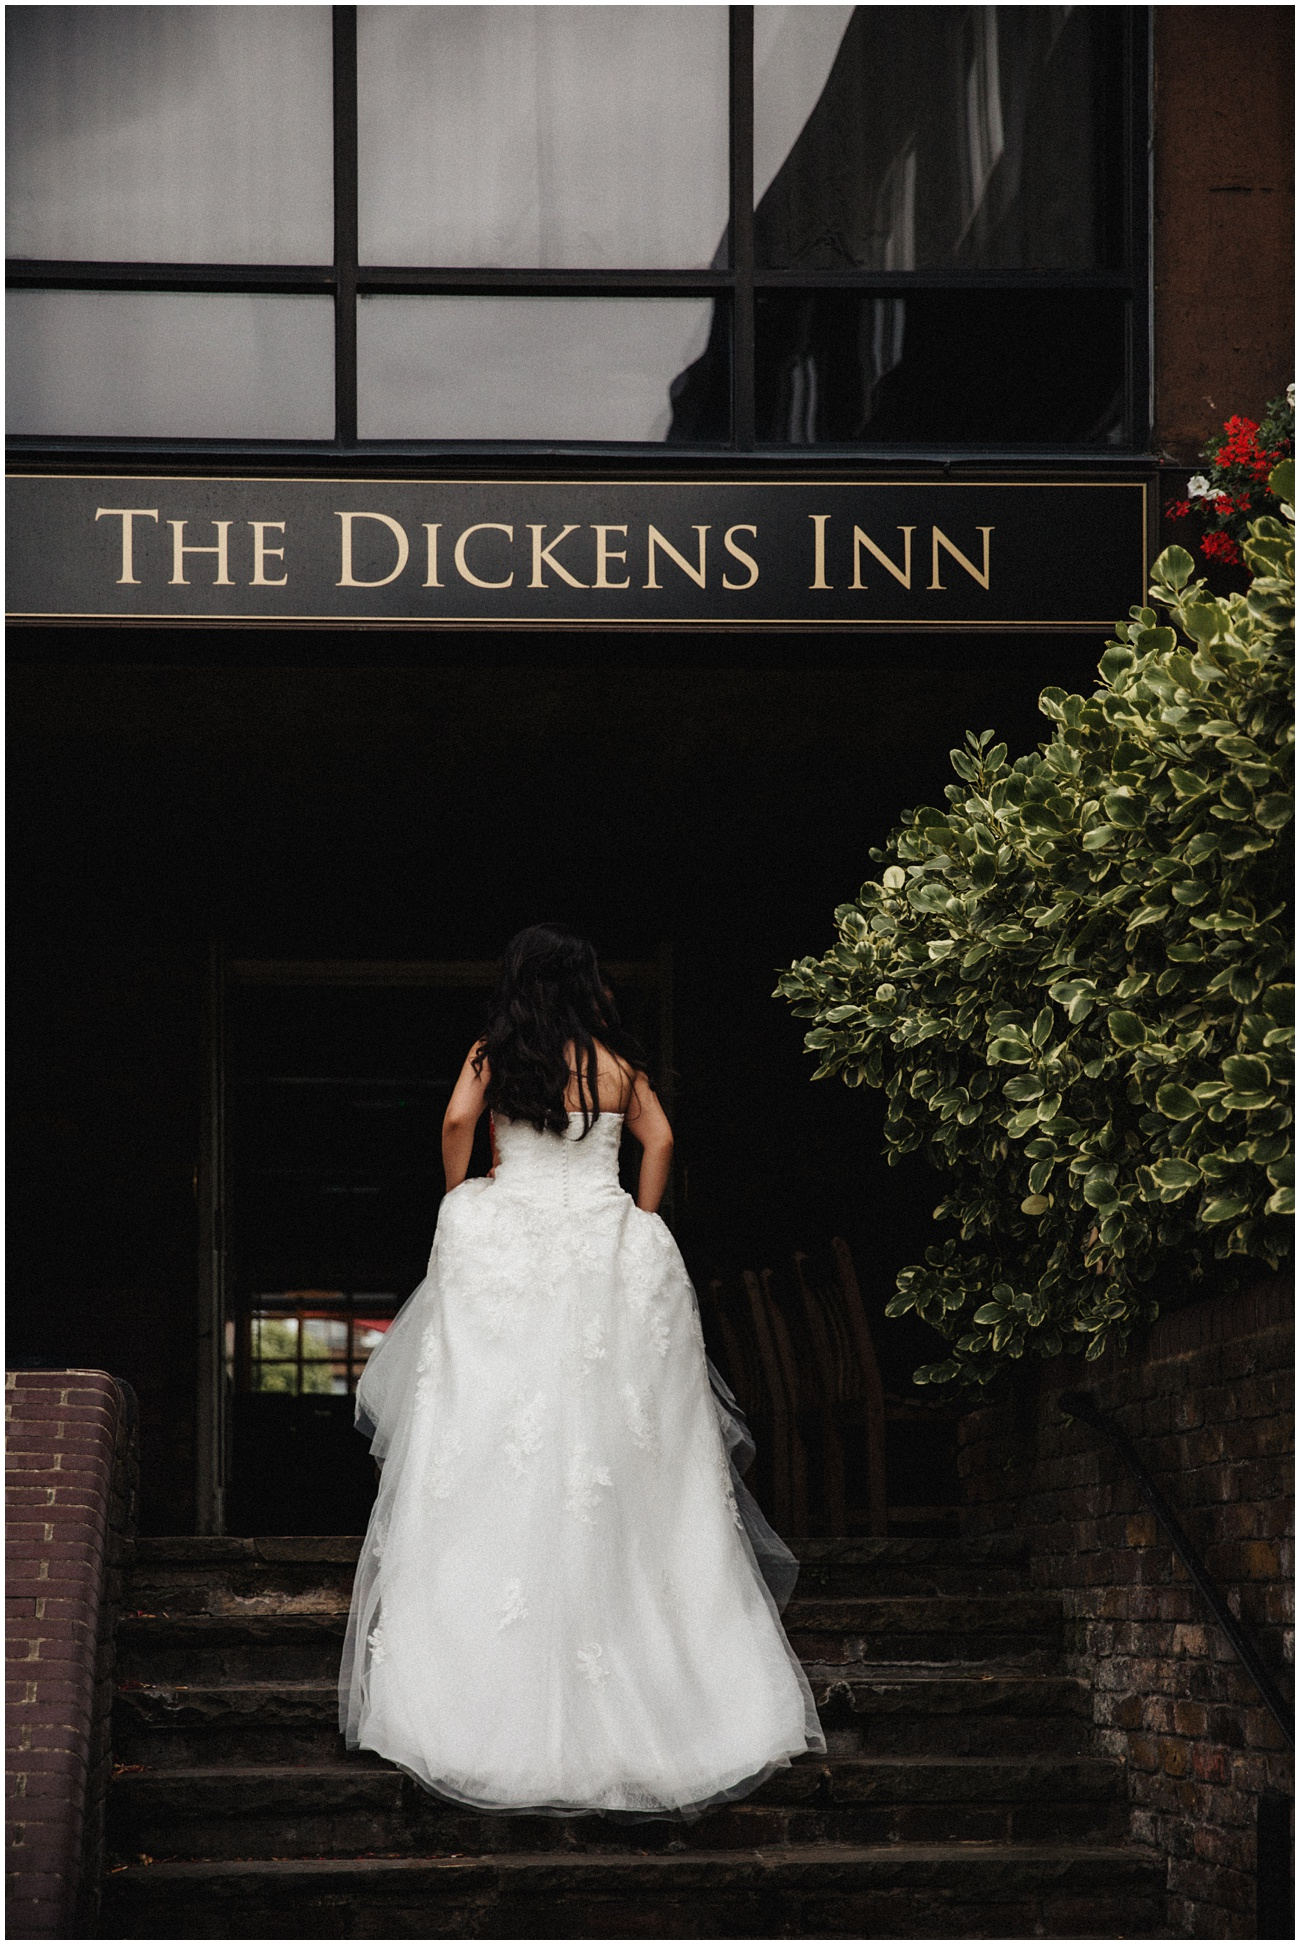 The bride in her wedding dress walking up the stairs to the Dickens Inn